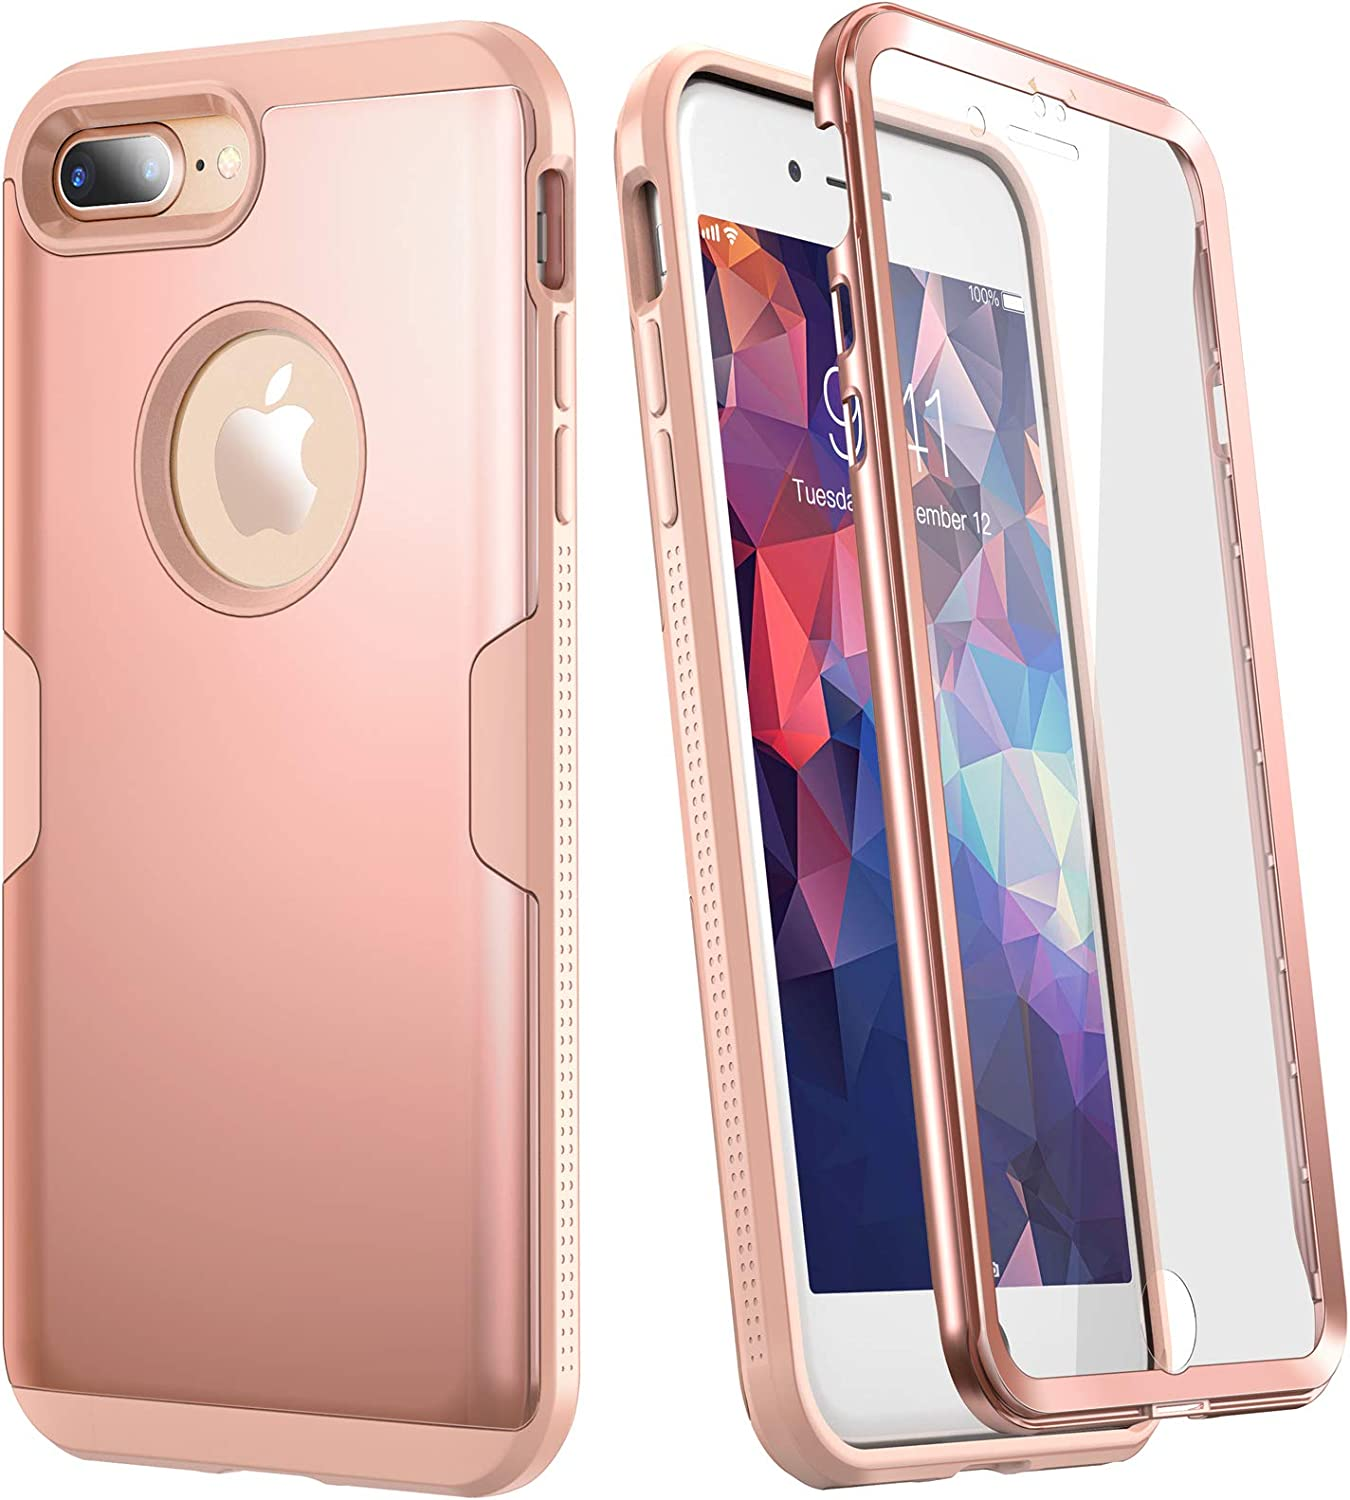 YOUMAKER Designed for iPhone 8 Plus Case & iPhone 7 Plus Case, Full Body Rugged with Built-in Screen Protector Heavy Duty Protection Slim Fit Shockproof Cover for iPhone 8 Plus (2017) 5.5 Inch - Pink